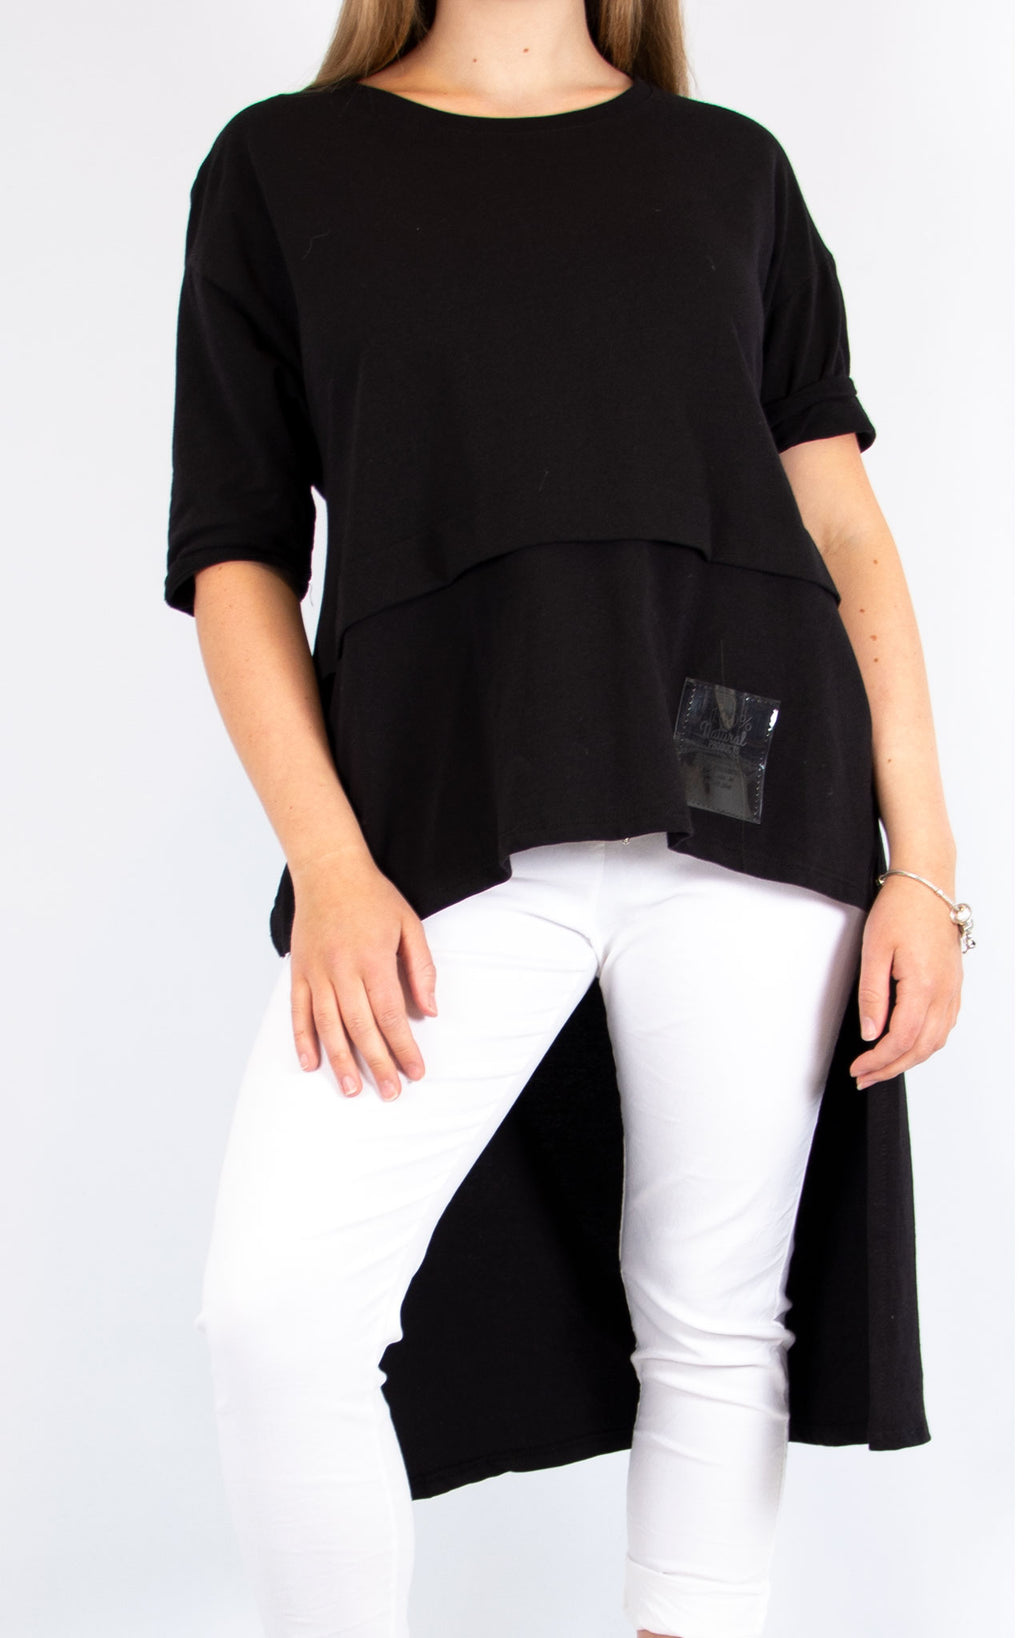 Black Cotton Long T Shirt | Made in Italy